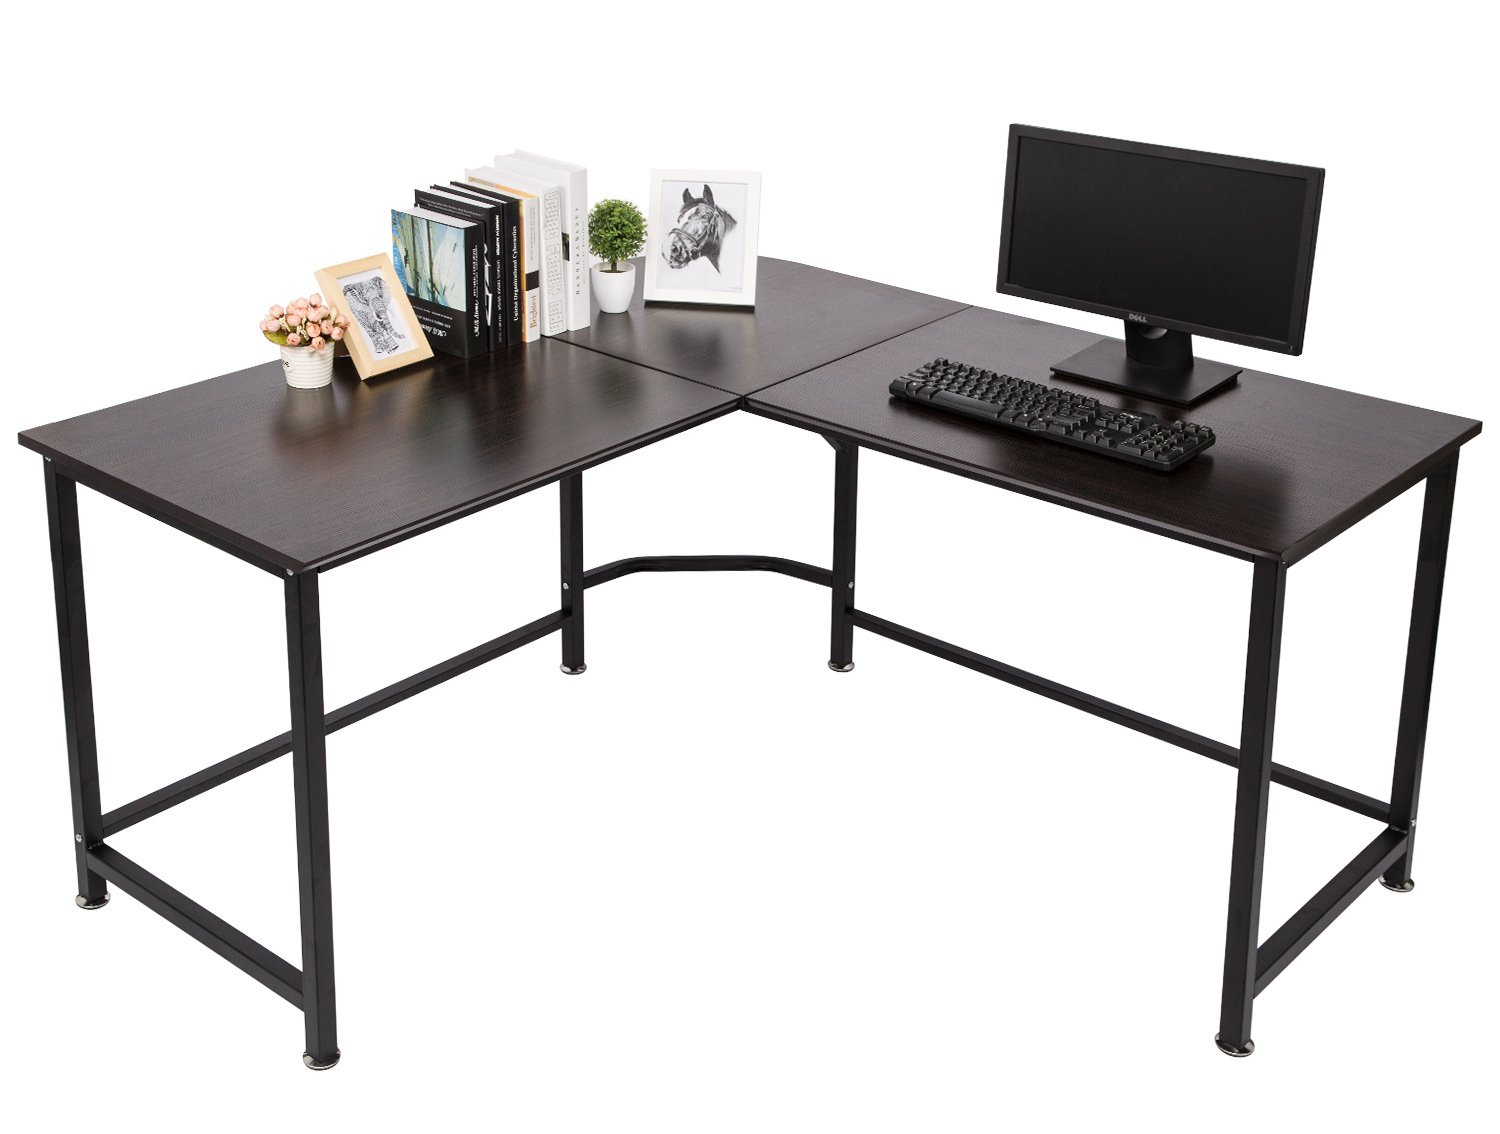 TOPSKY L-Shaped Desk Corner Computer Desk 55'' x 55'' with 24'' Deep Workstation Bevel Edge Design (Walnut+Black Leg) by TOPSKY (Image #1)